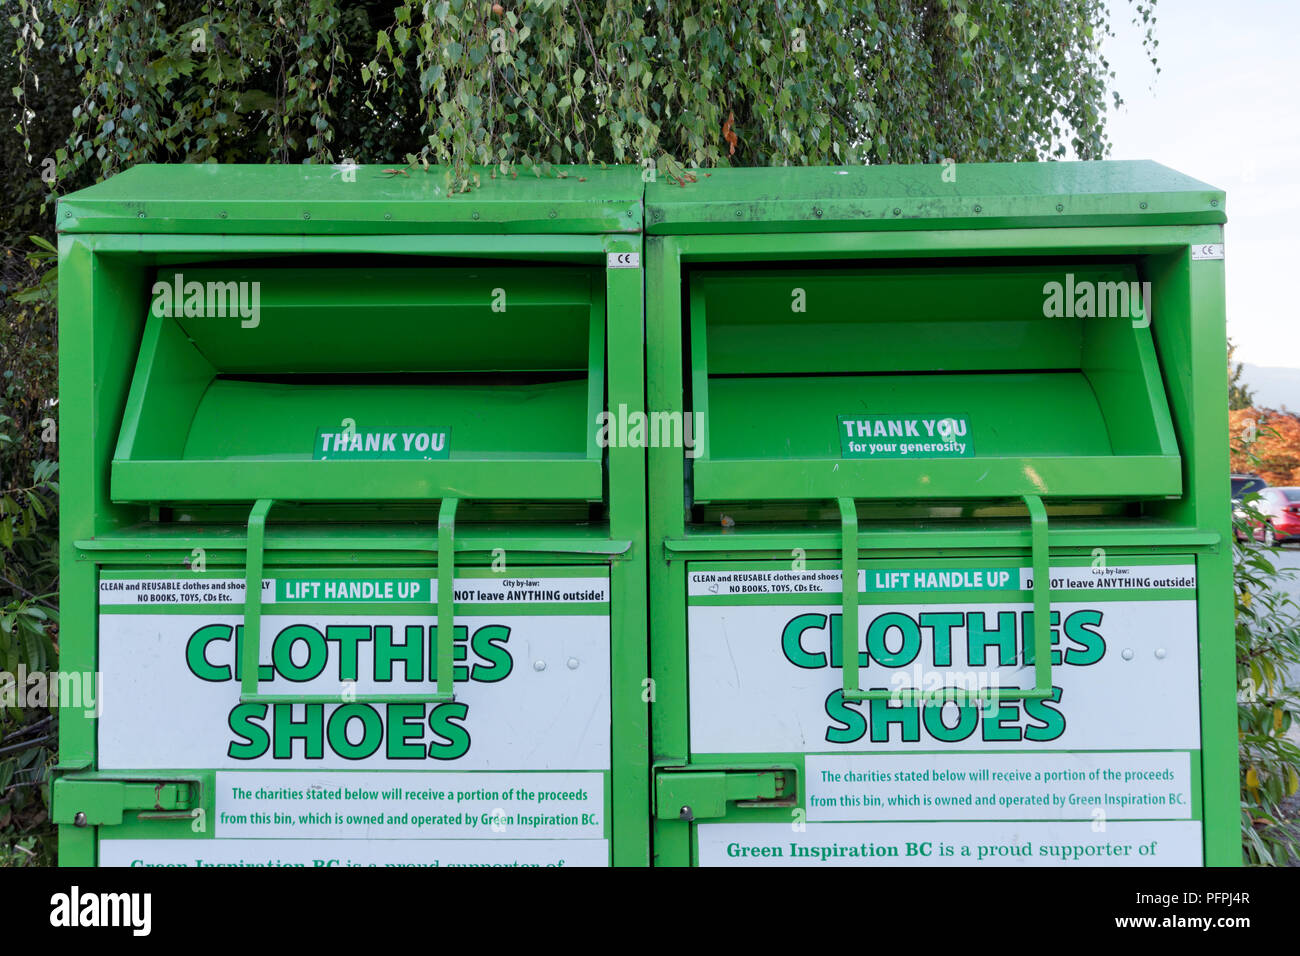 Clothing and shoes charitable collection box in Vancouver, BC, Canada - Stock Image